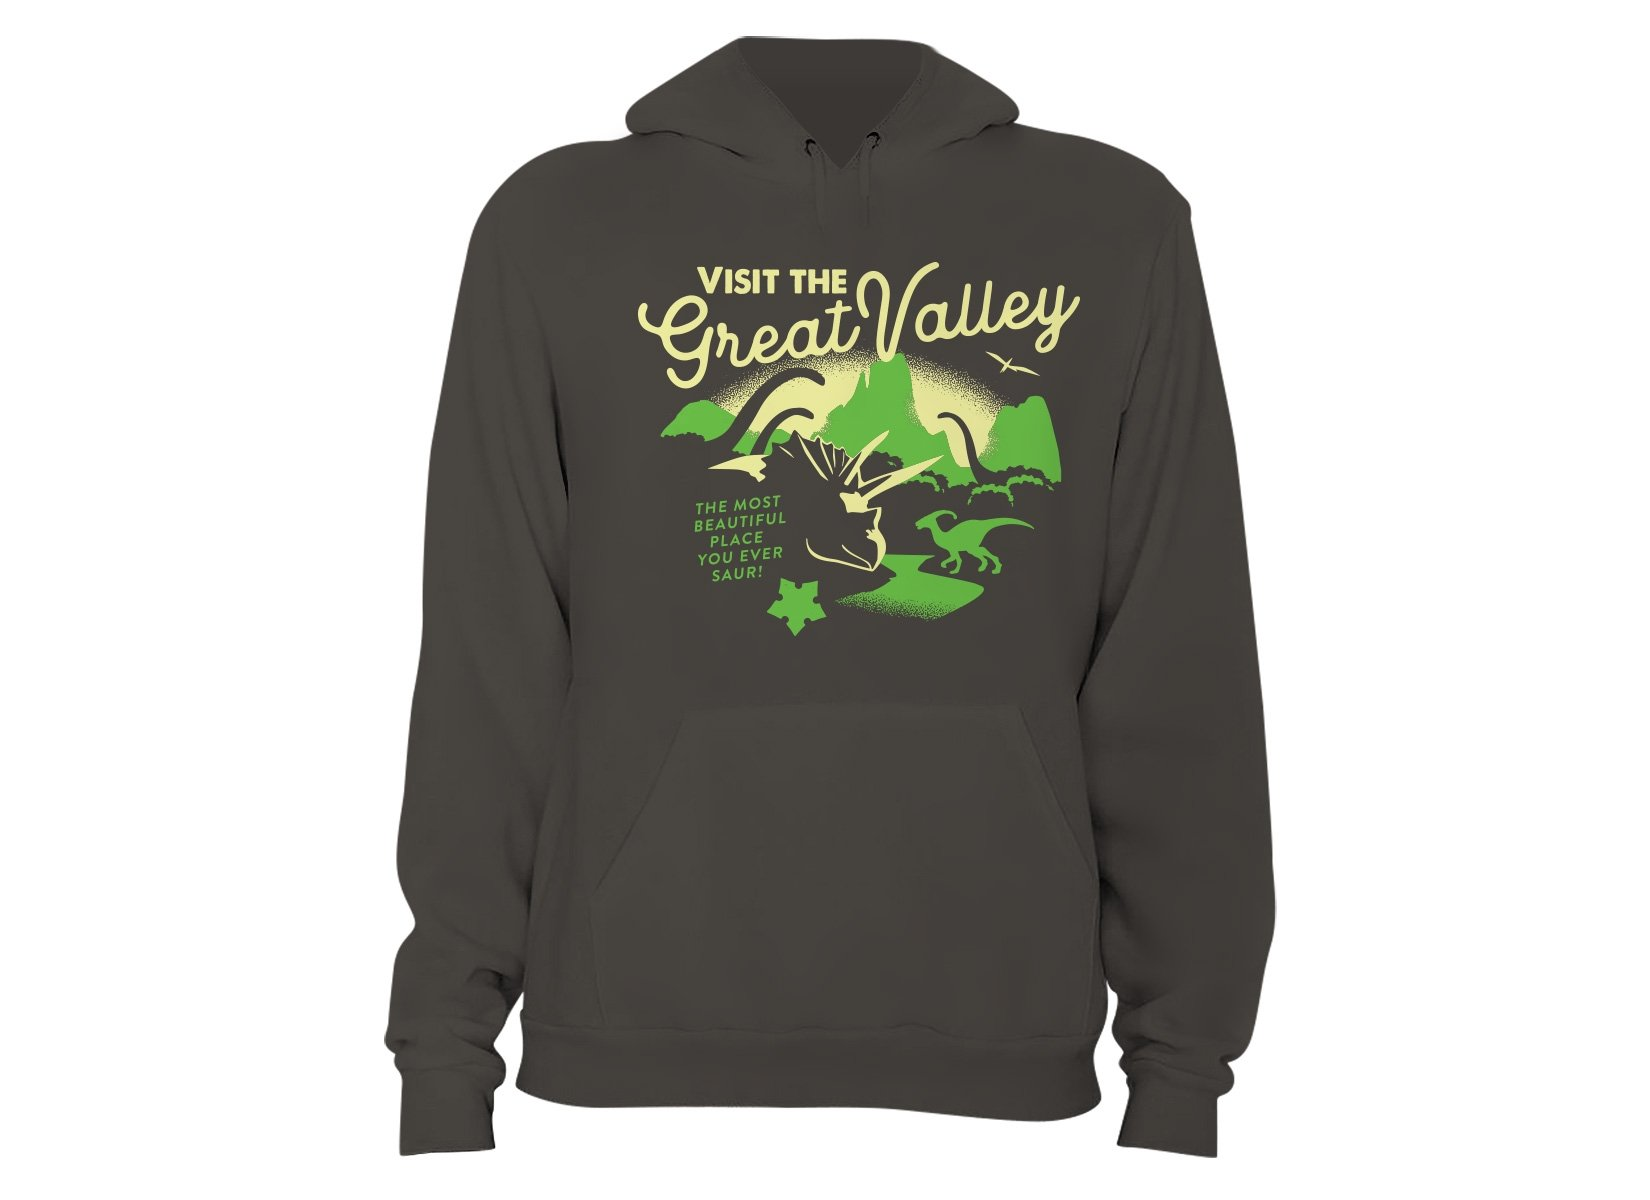 Visit The Great Valley on Hoodie